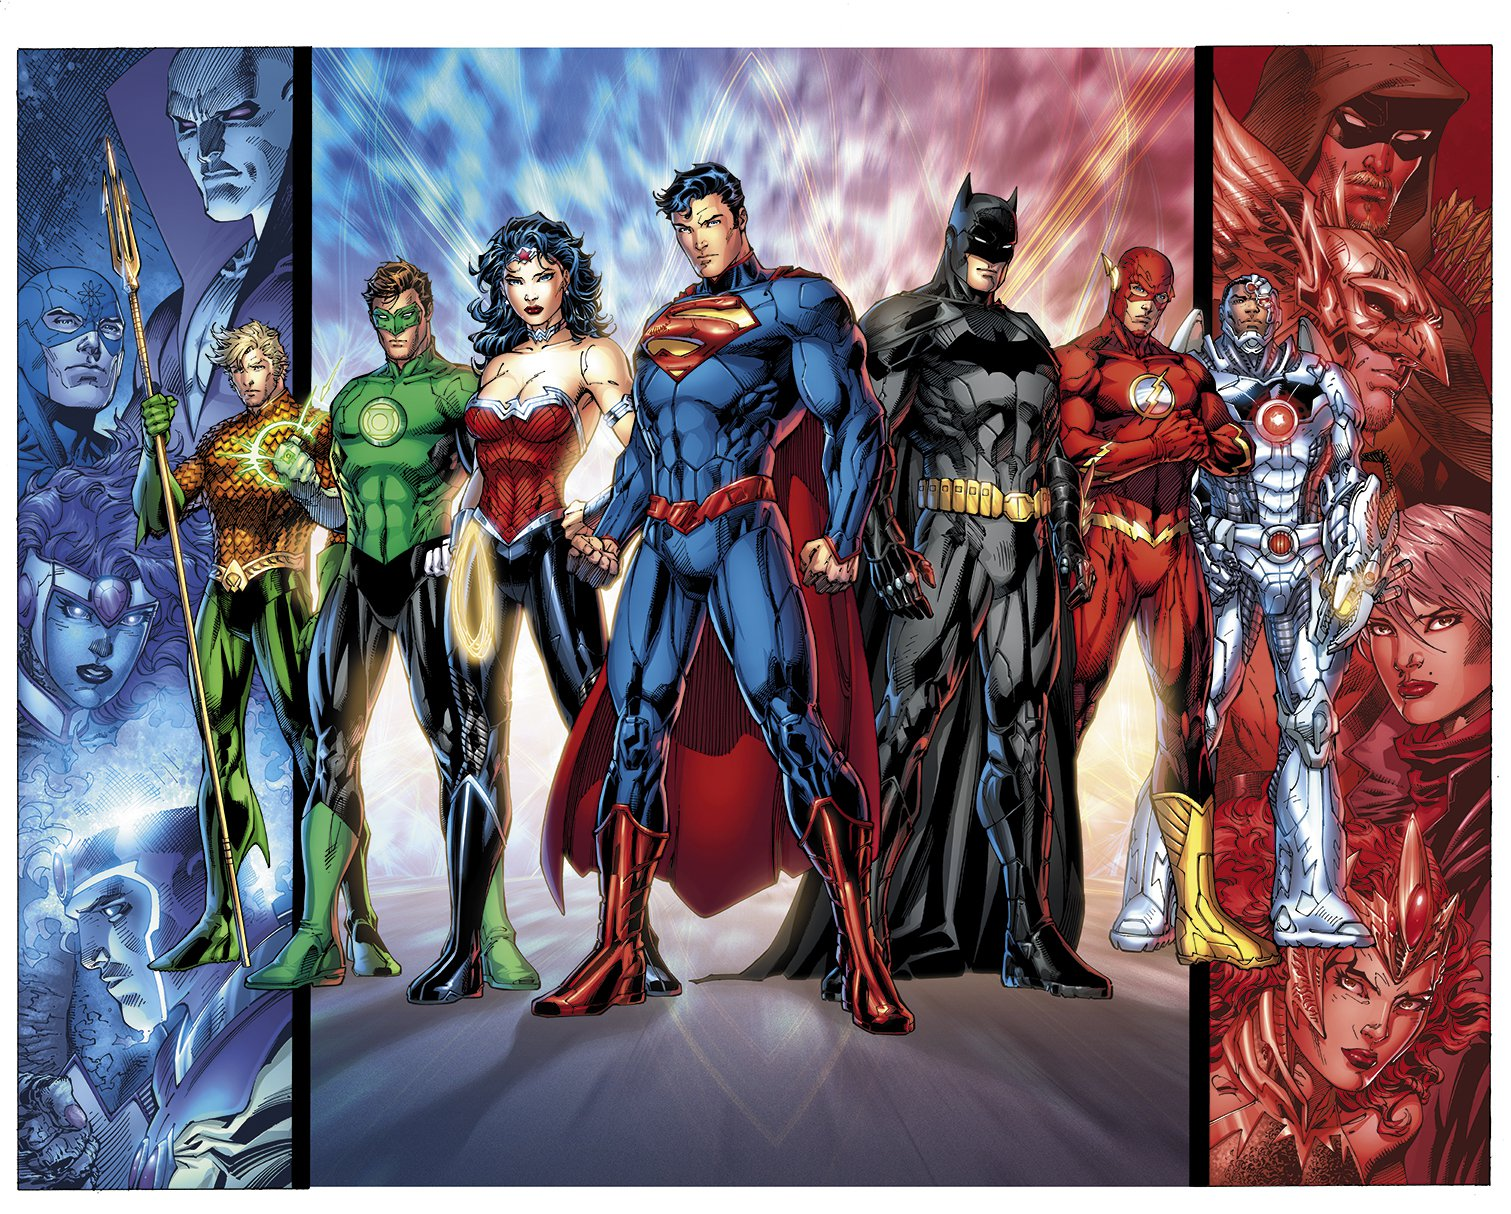 CapMoComics: The DC New 52 Justice League 1-6 Review